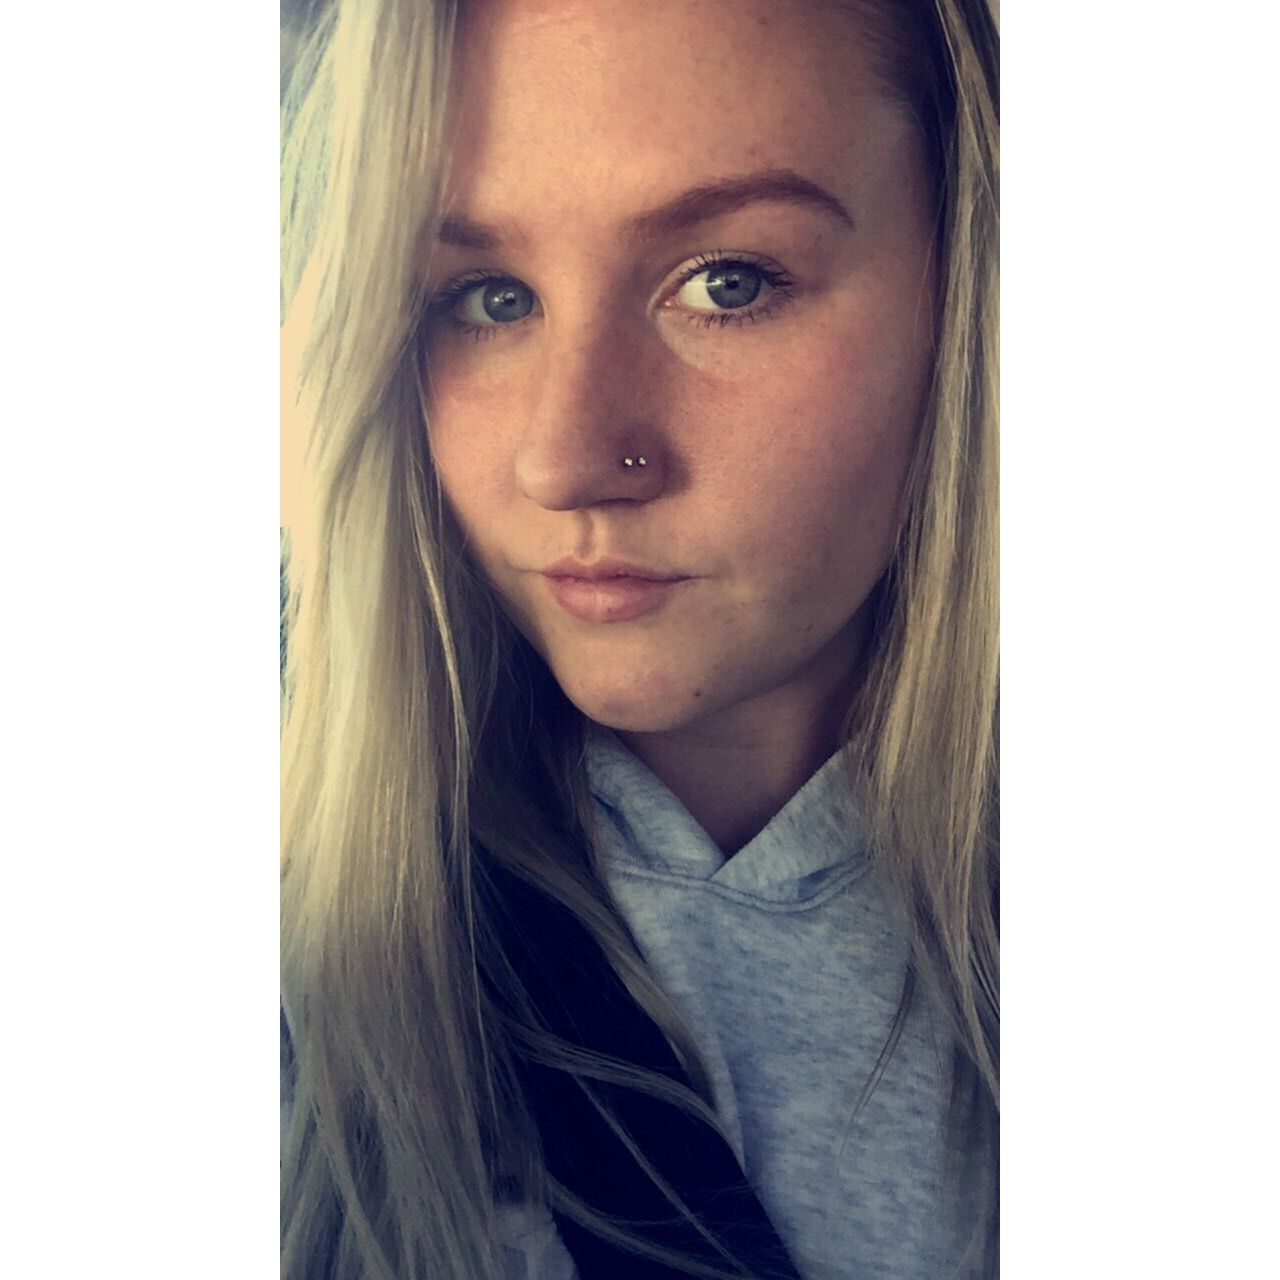 Covering up nose piercing for work  Double nose piercing Loving it  Earingspiercings  Pinterest